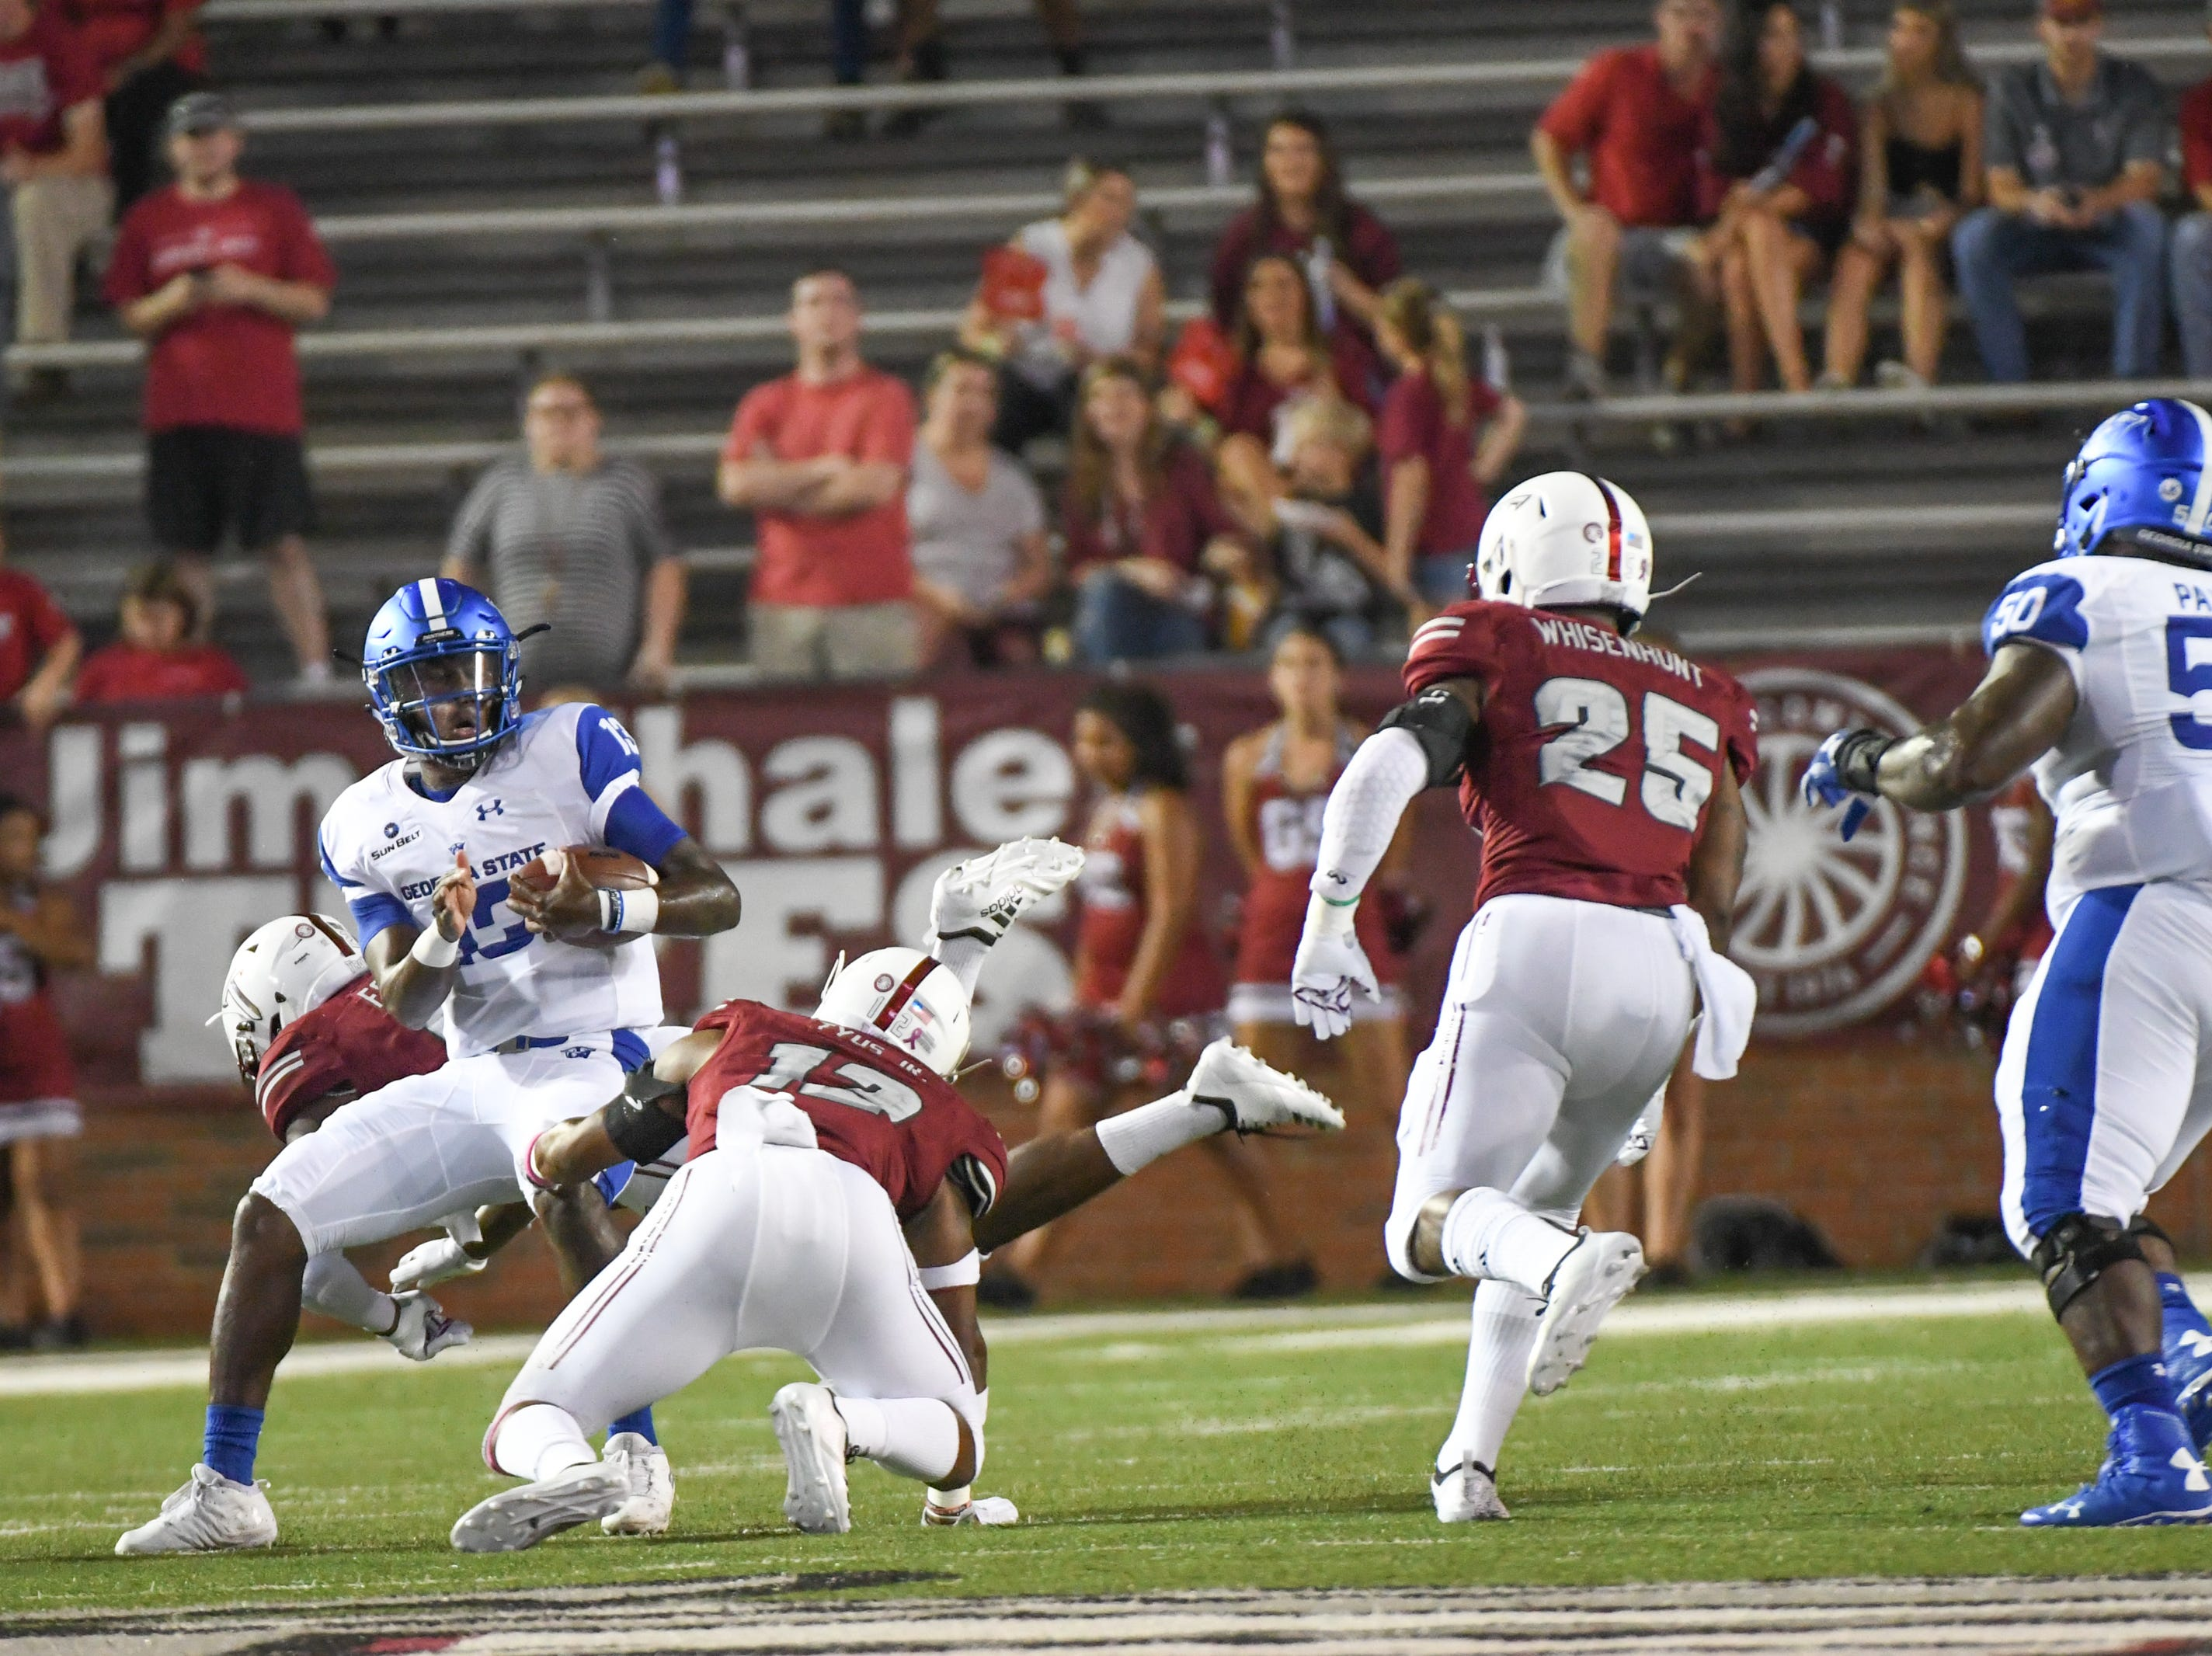 Georgia State Panthers quarterback Dan Ellington (13) is tackled by Troy Trojans safety Melvin Tyus (12) during a game at Veteran's Memorial Stadium in Troy, Ala., on Thursday, Oct. 4, 2018. (Chip Dillard/Special to the Montgomery Advertiser)